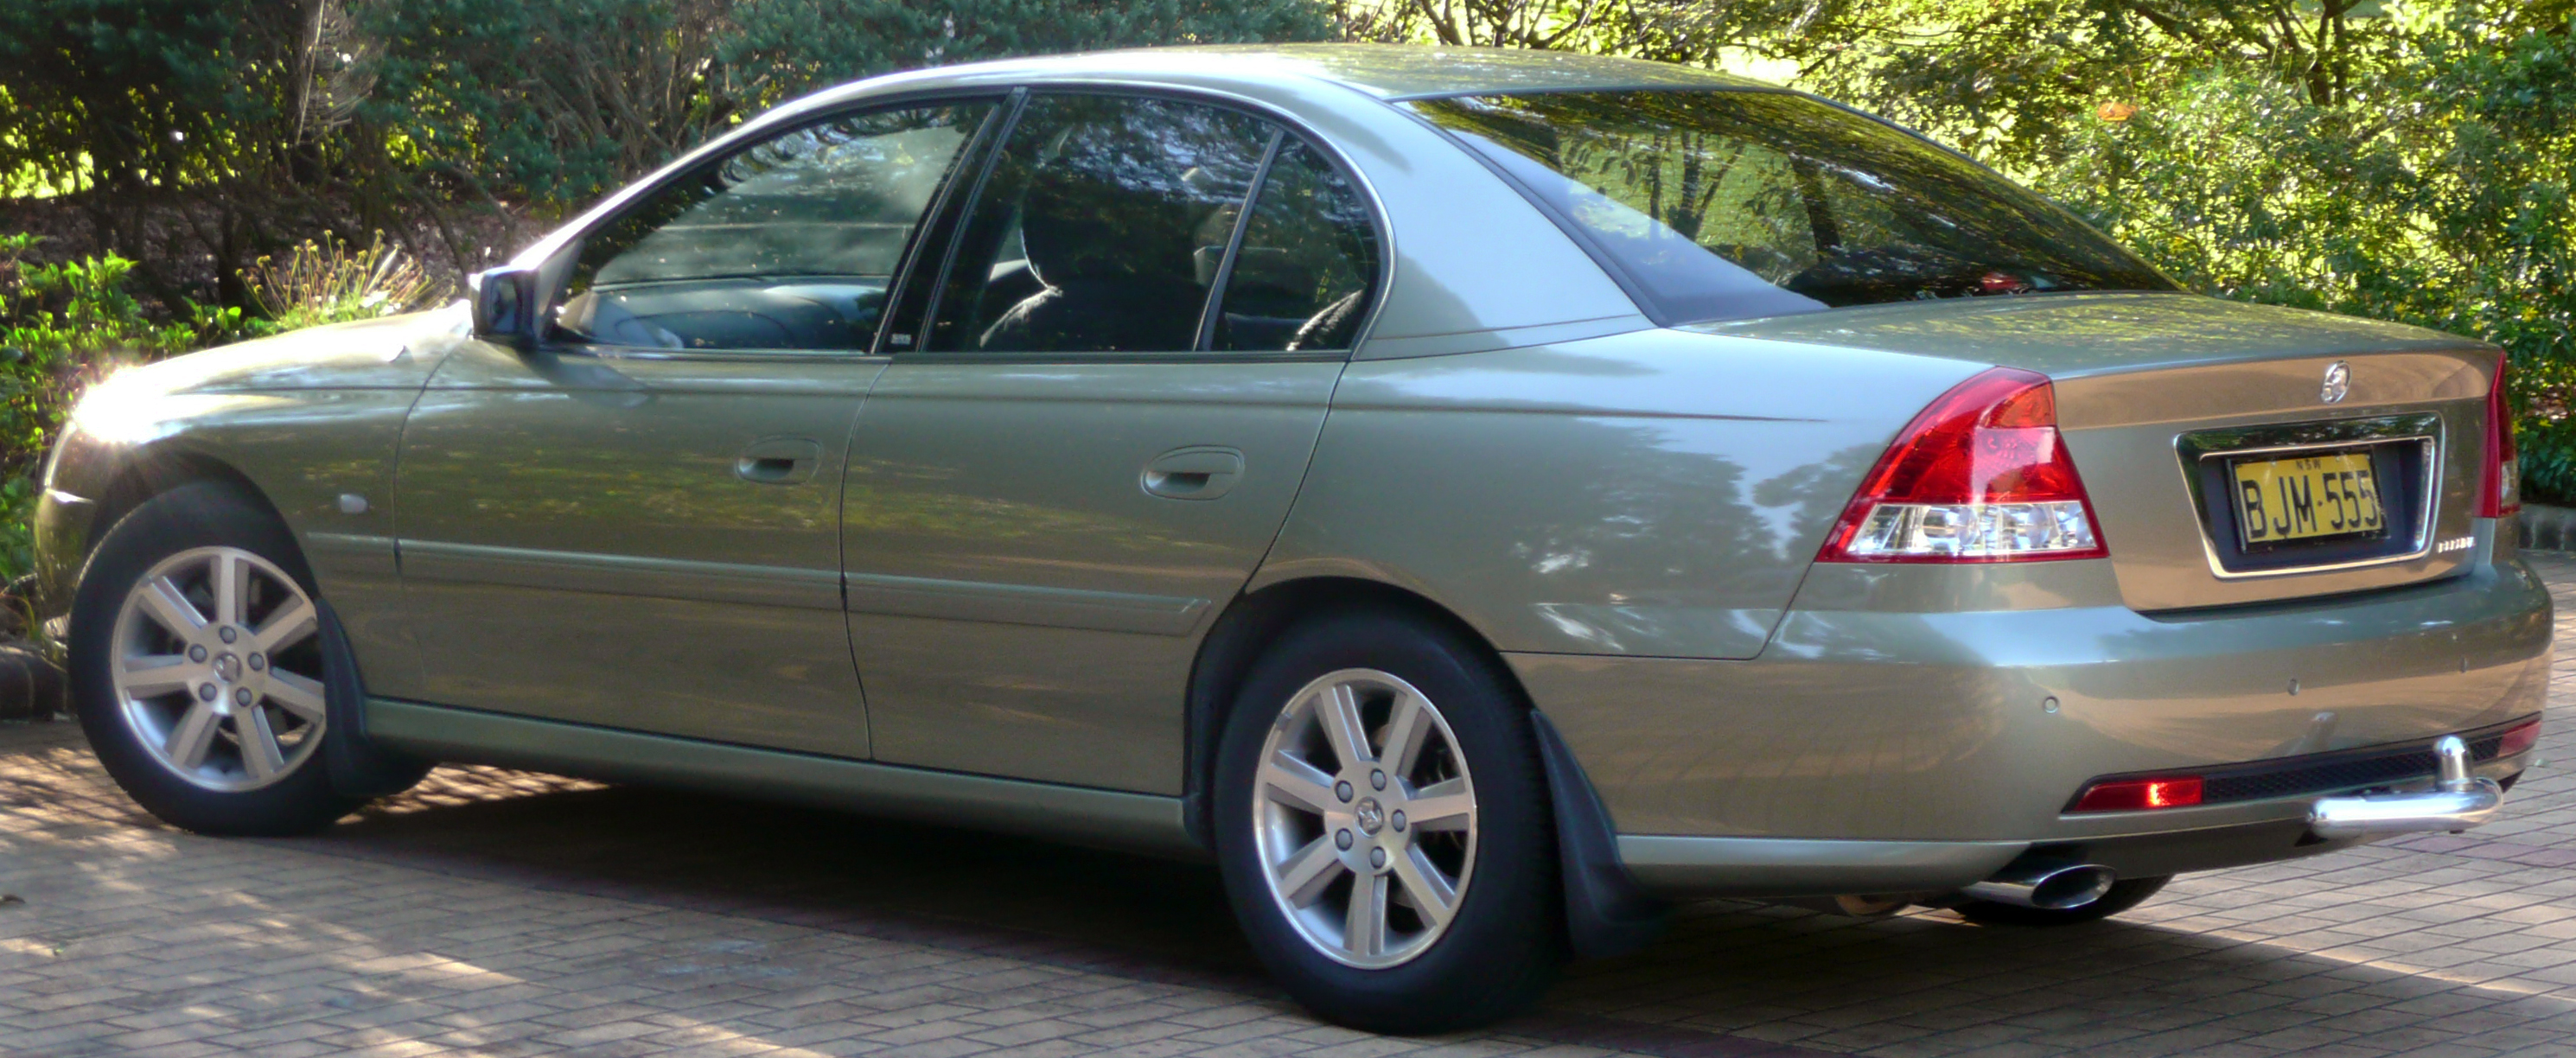 2004 Holden Berlina #2